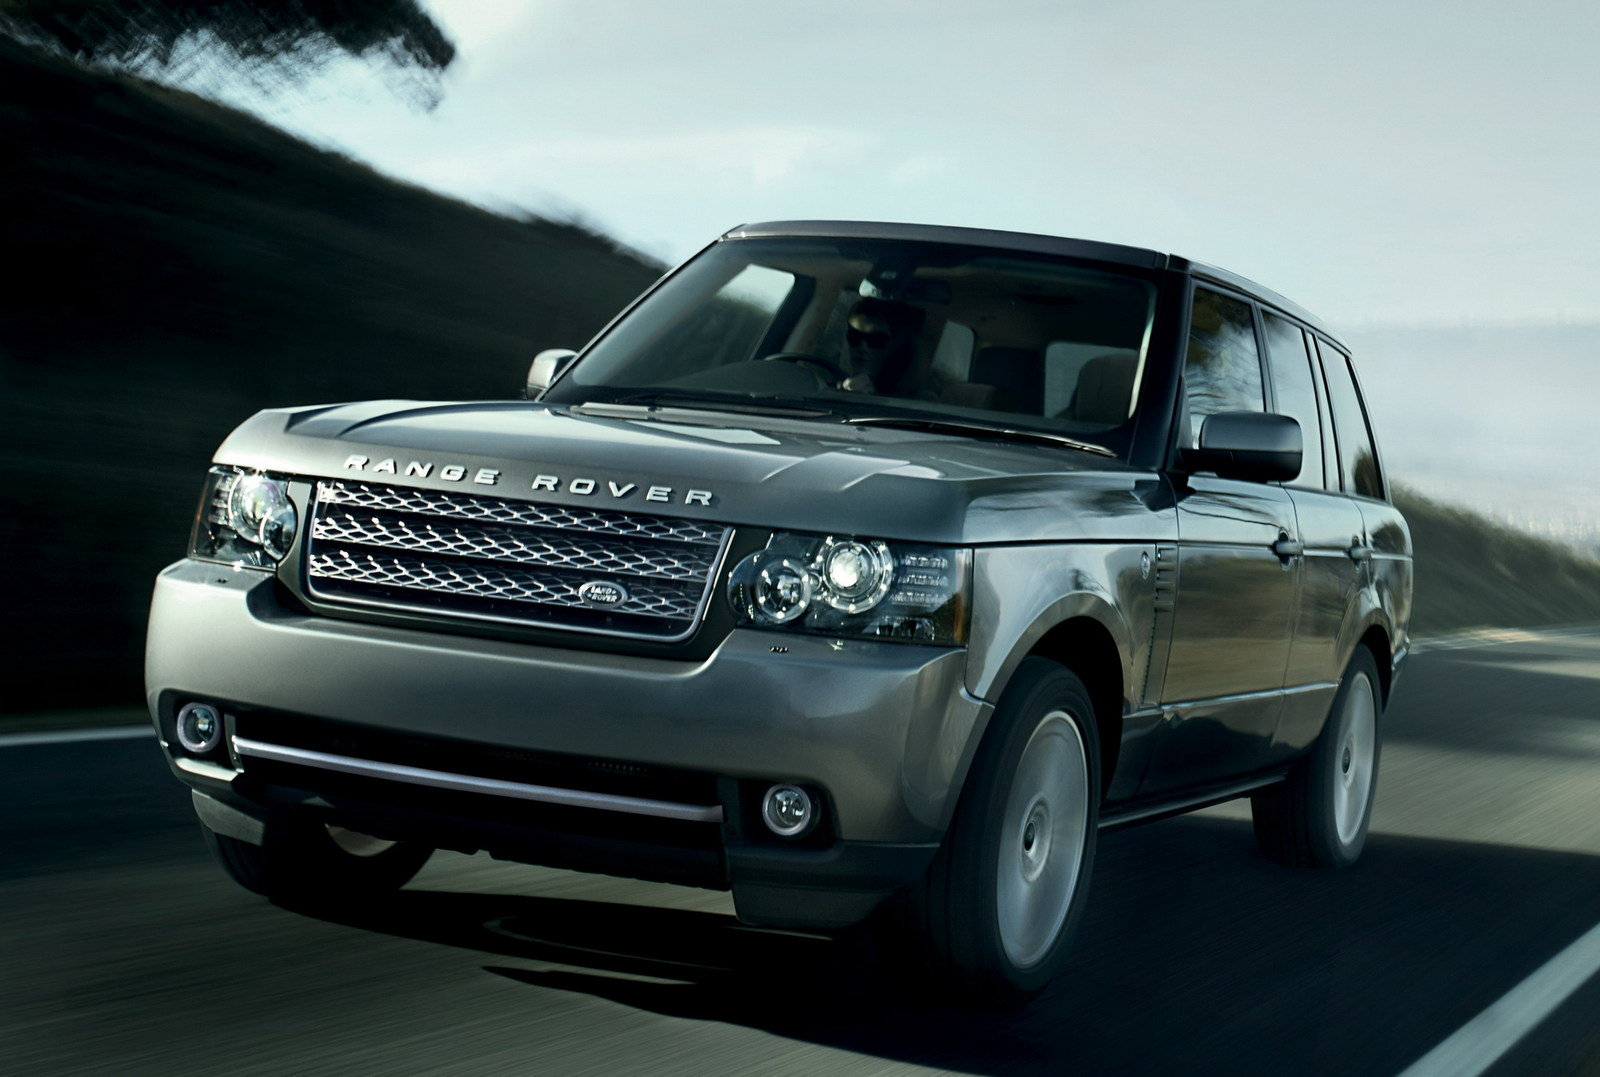 2012 Land Rover Range Rover Westminster Edition Top Speed